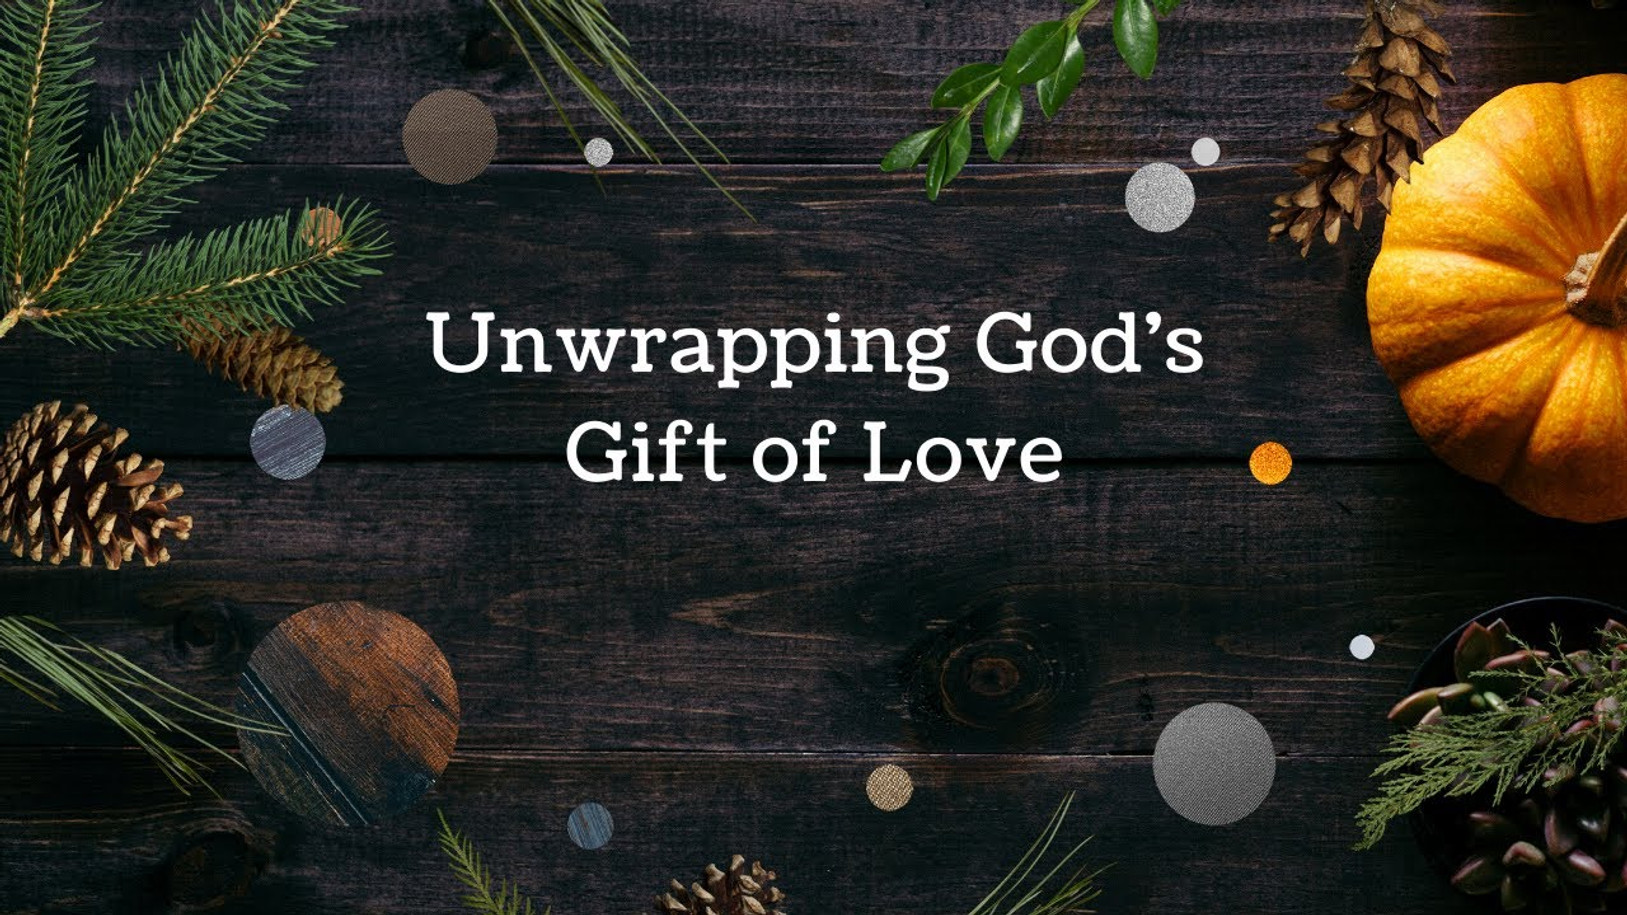 Unwrapping God's Gift of Love